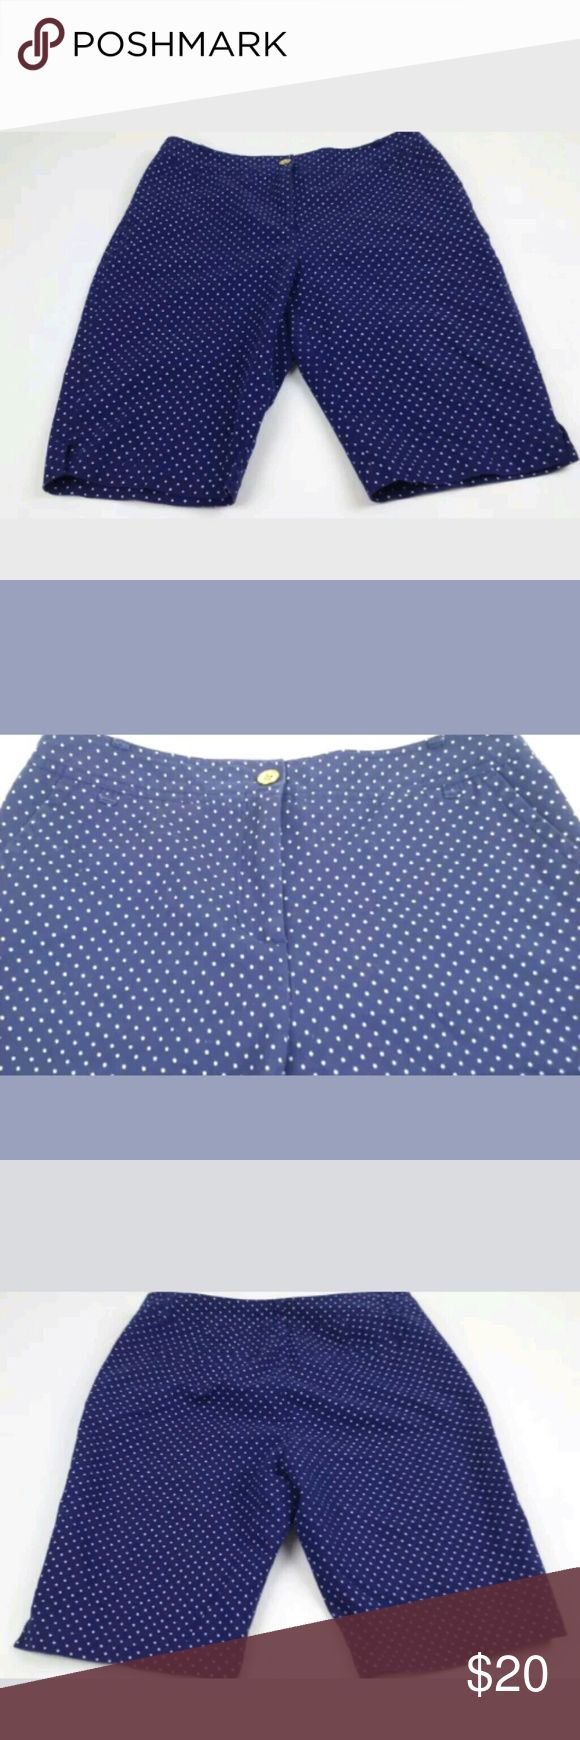 charter club  size 10 blue polka dot Bermuda short charter club slim it up women size 10 blue & white polka dot bermuda shorts The shorts are blue with a purple under tone. Therefore, some angles may look blue or purple.  98% cotton 2% spandex Inseam about 11.25 inches Length about 20.5 inches See picture for defect below zipper threading   Location From a pet and smoke free home Charter Club Shorts Bermudas